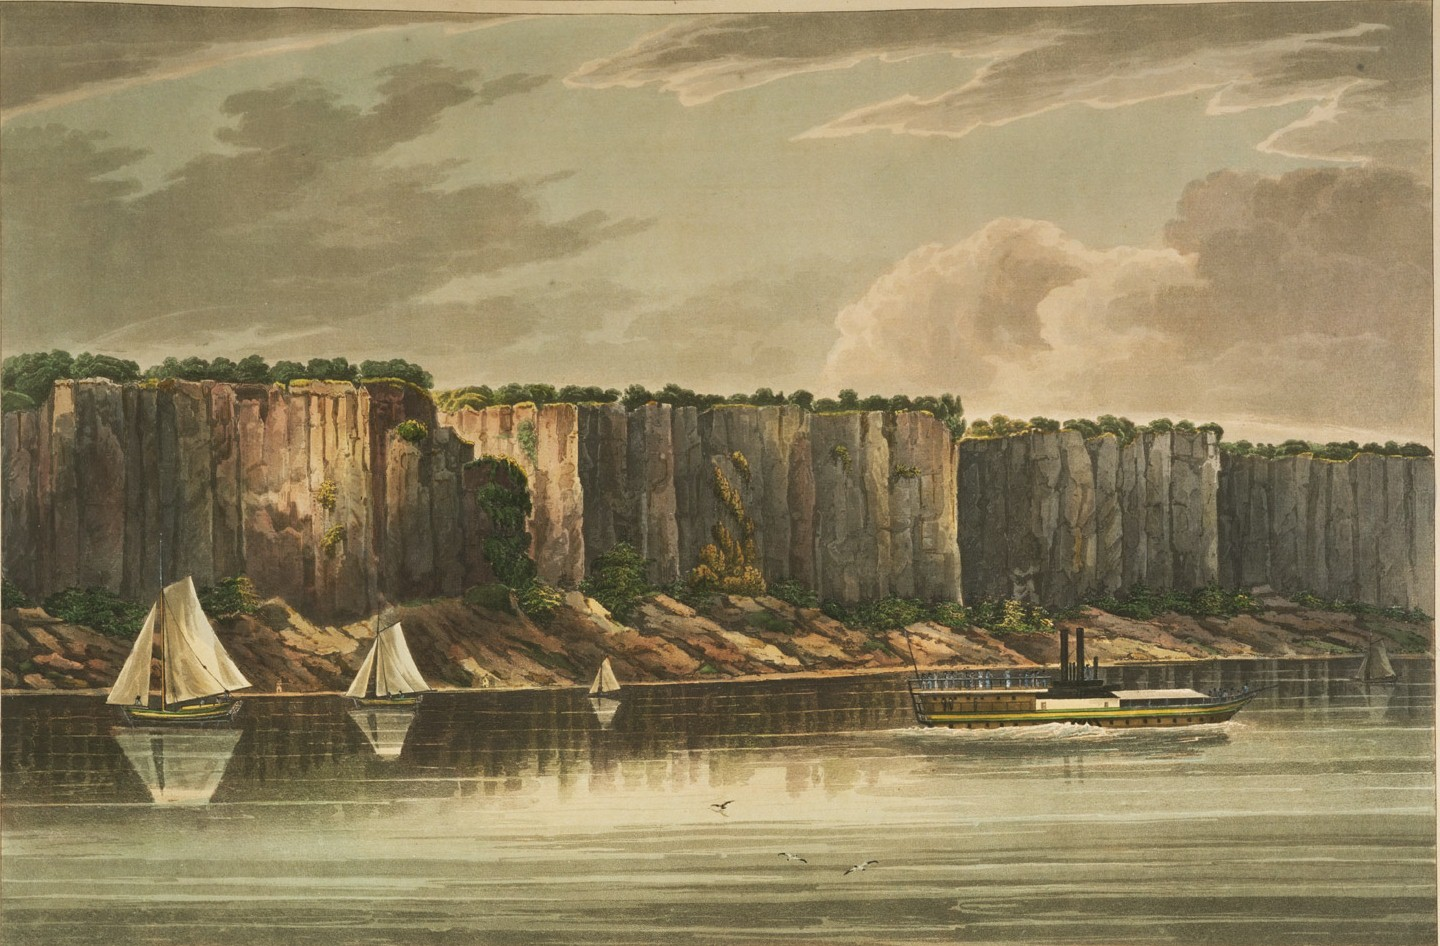 William Guy Wall The Palisades